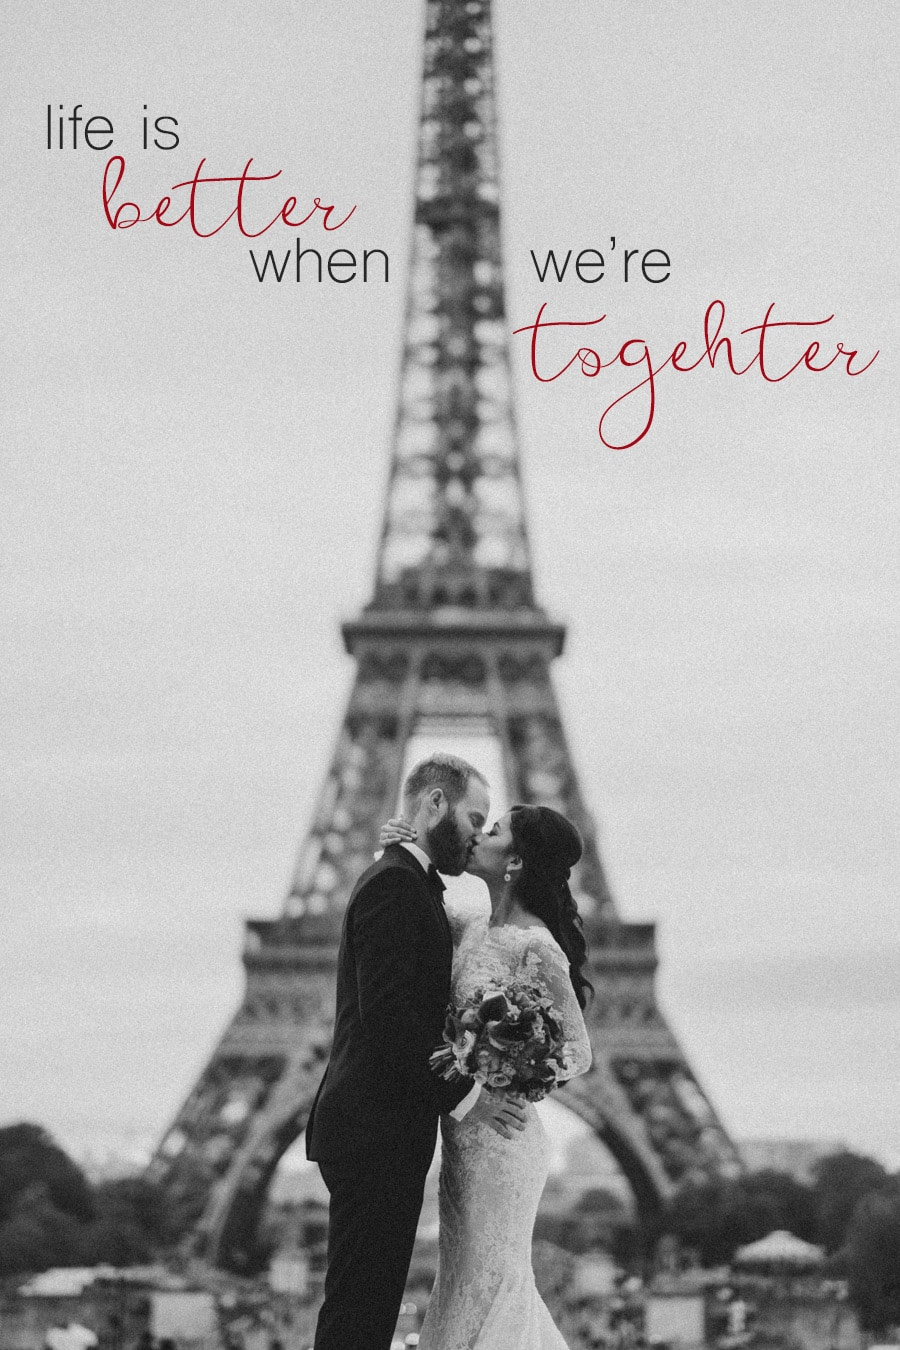 Best Love Quotes to Say I Love You